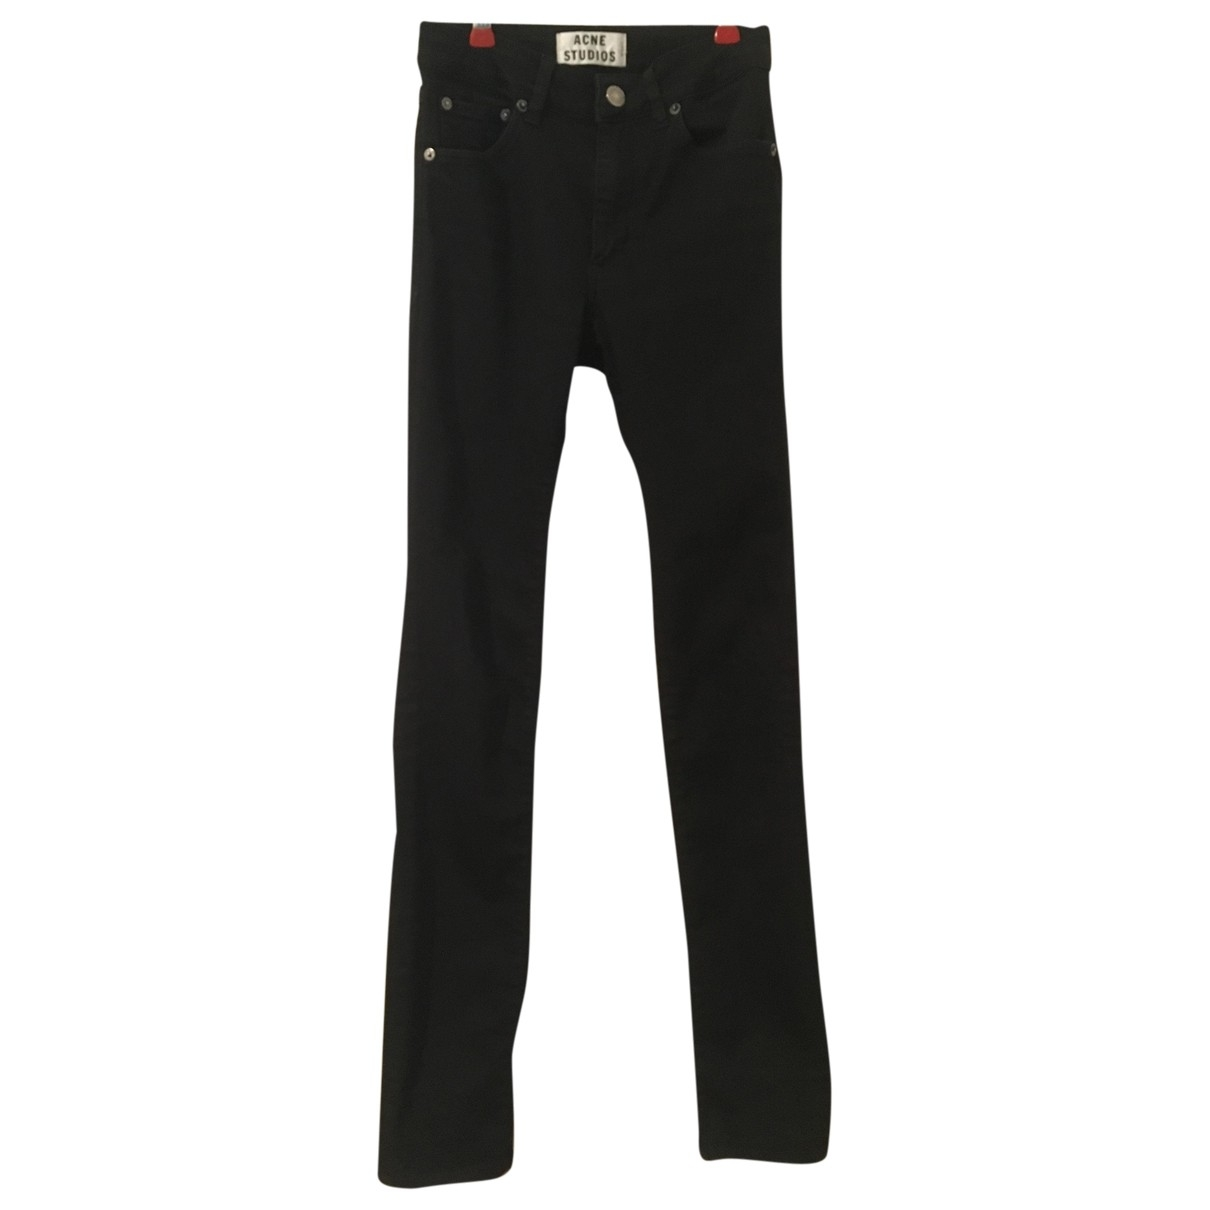 Acne Studios \N Black Cotton - elasthane Jeans for Women 25 US